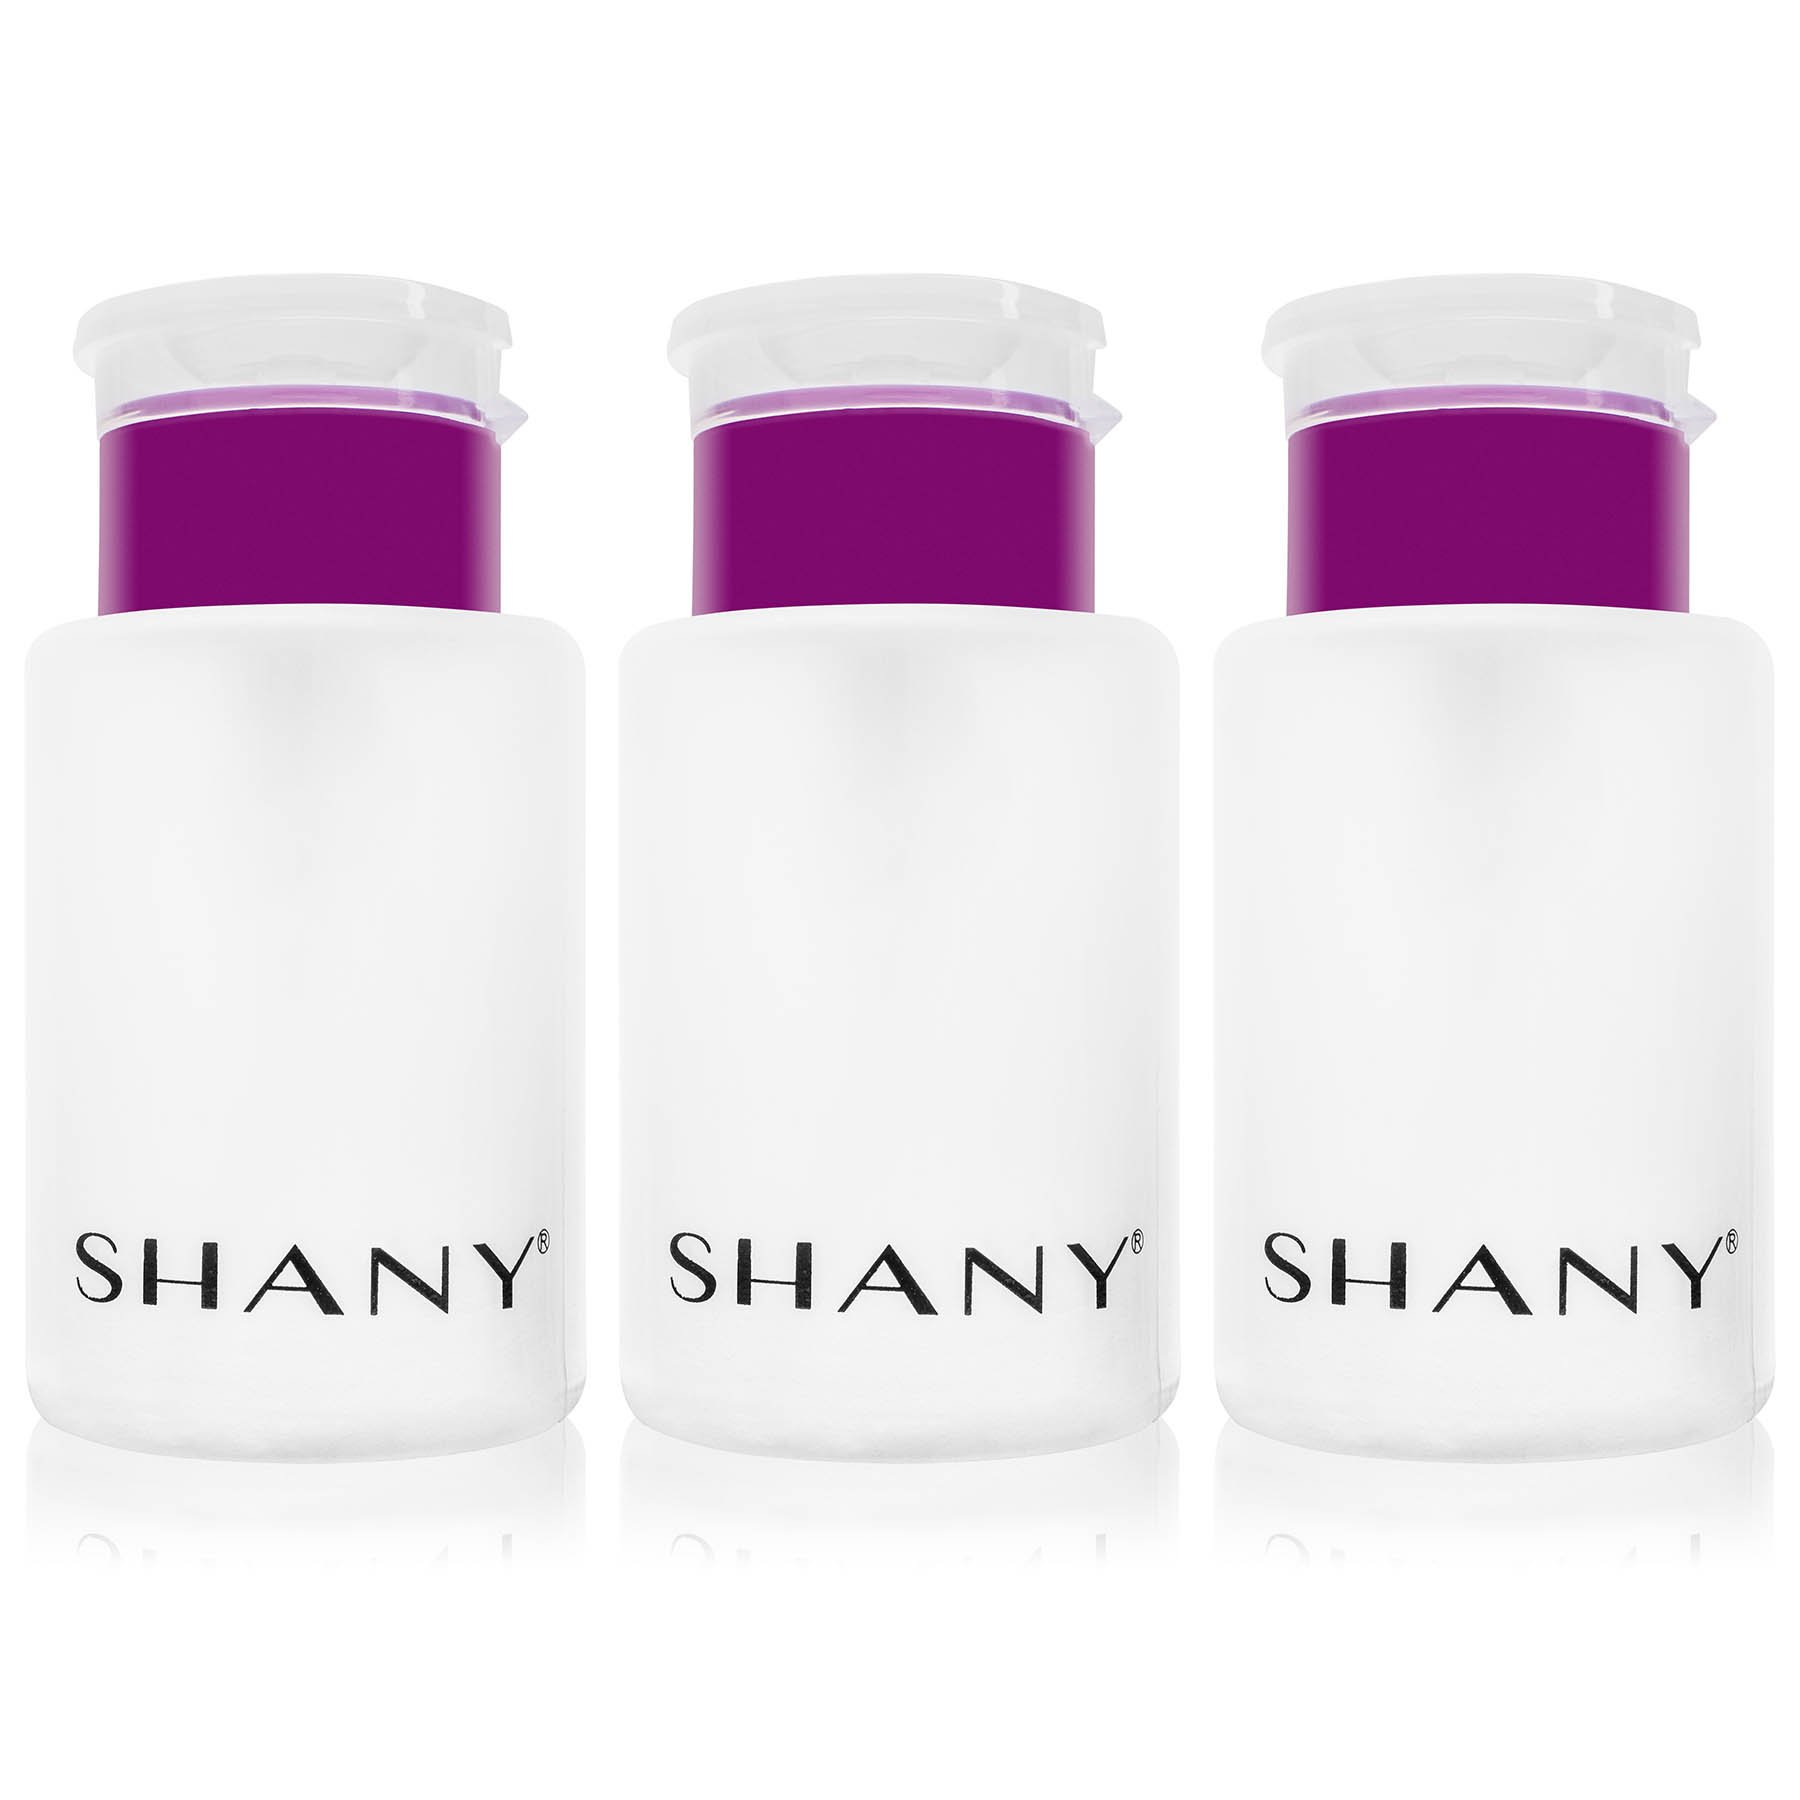 SHANY Push-Top Nail/Makeup/skin Care Liquid Dispenser with Snap Flip Top, 6OZ, Pack of 3